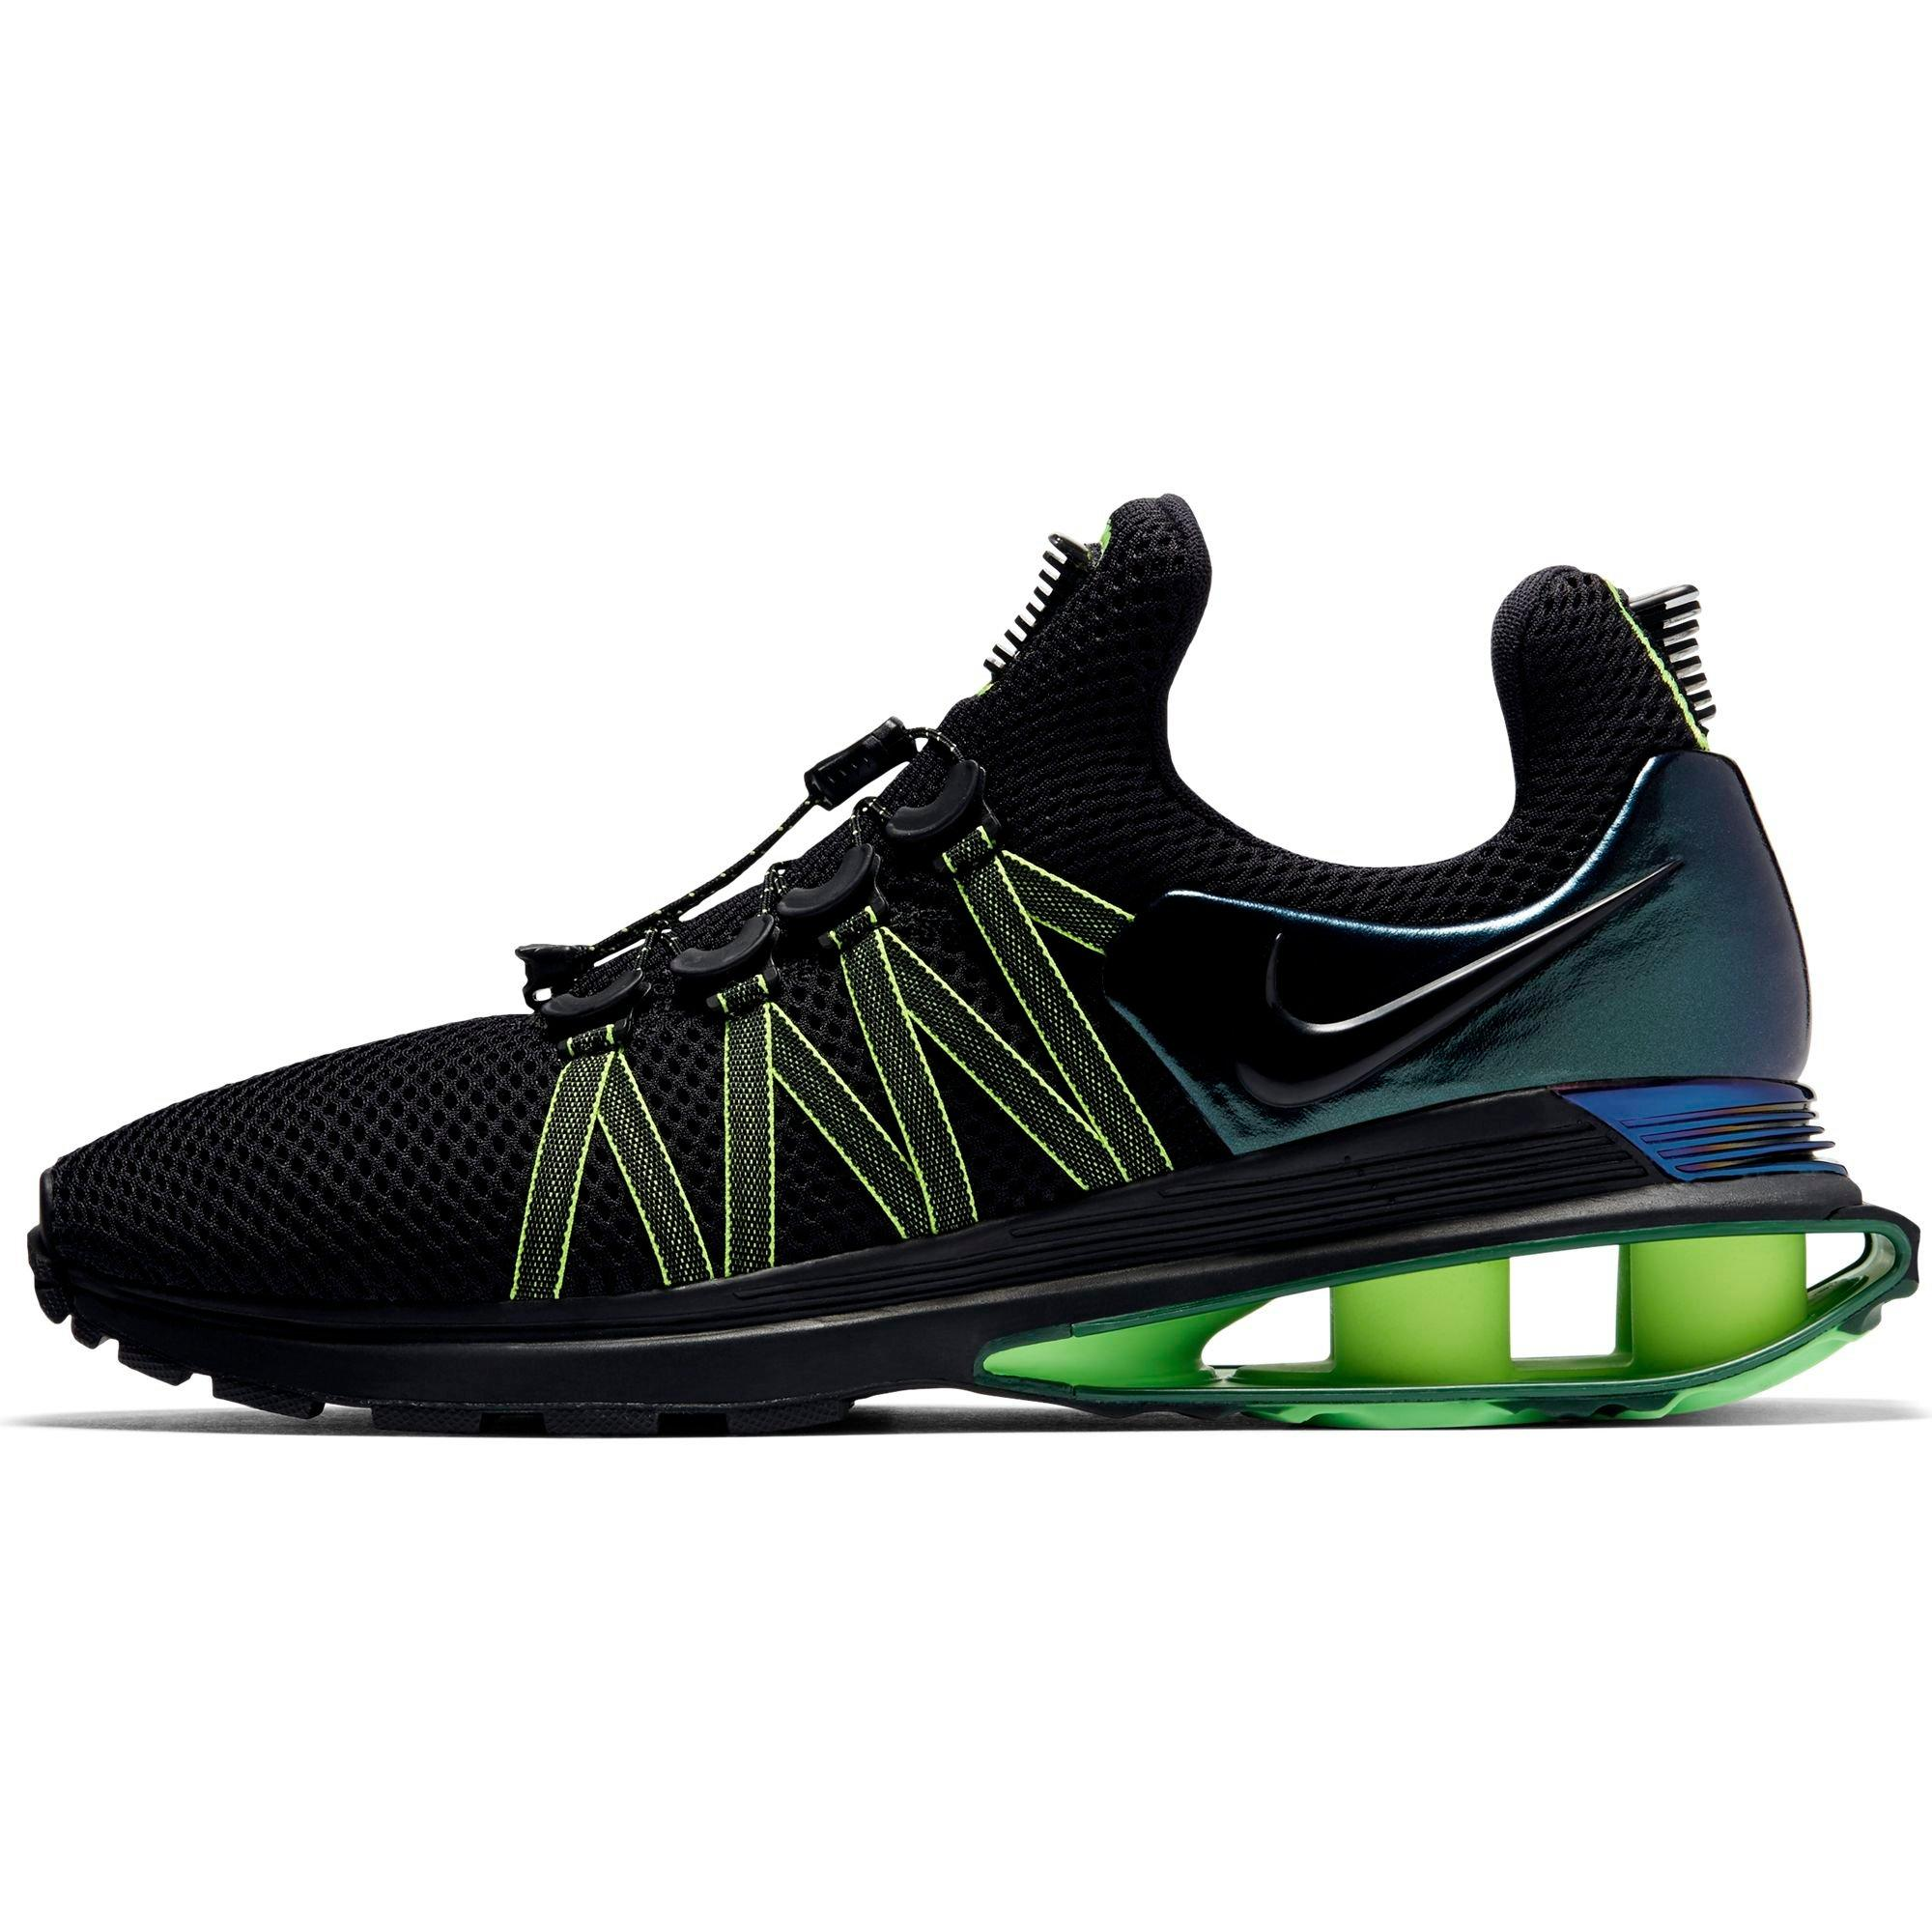 save off d85a7 ec8b7 The first Shox product,the R4,hit shelves in 2000. nike shocks